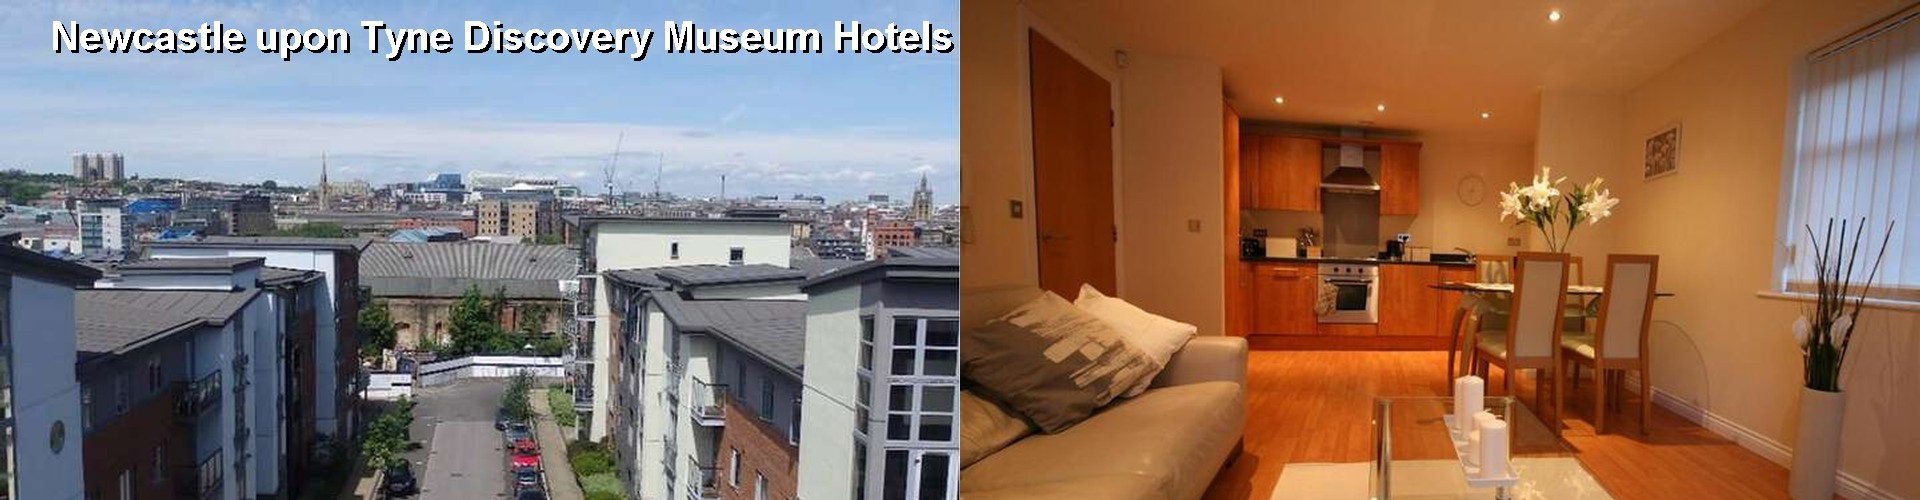 5 Best Hotels near Newcastle upon Tyne Discovery Museum